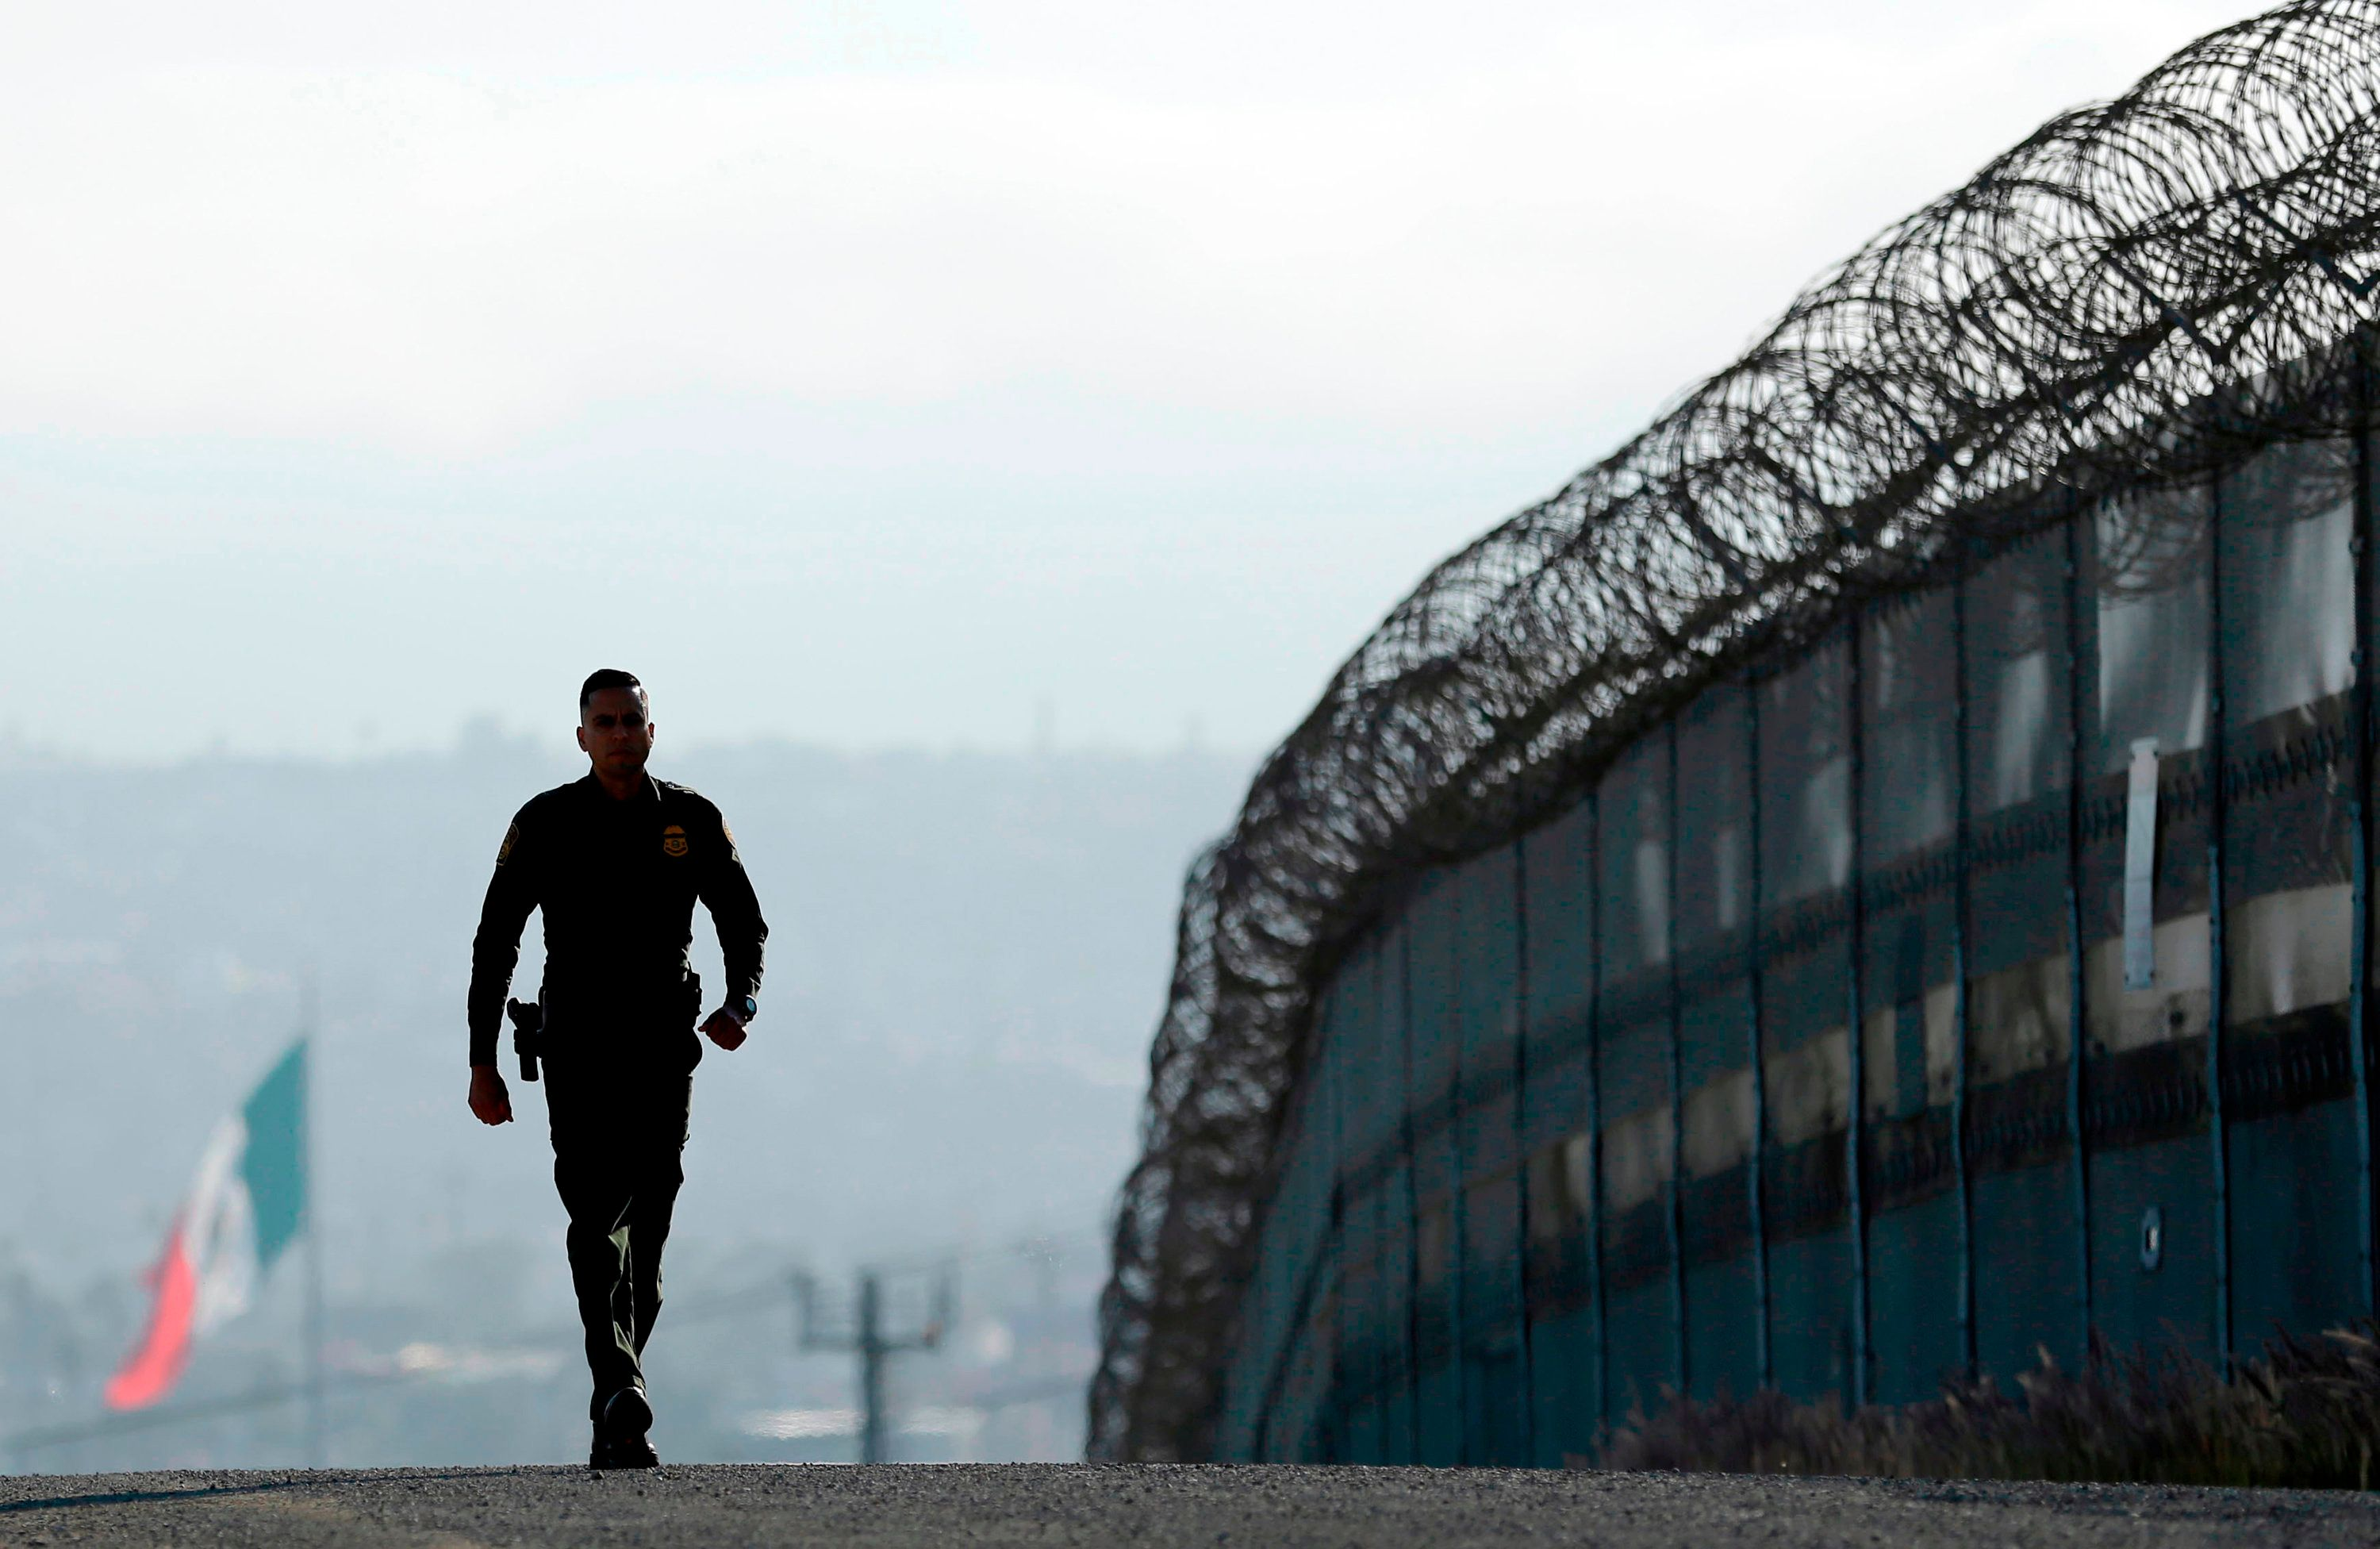 FILE - In this June 22, 2016 file photo, Border Patrol agent Eduardo Olmos walks near the secondary fence separating Tijuana, Mexico, background, and San Diego in San Diego. California National Guard troops have started training with the U.S. Customs and Border Patrol to be camera operators, radio dispatchers, intelligence analysts and fill other support roles to free up more agents to patrol the Mexican border. (AP Photo/Gregory Bull, File)